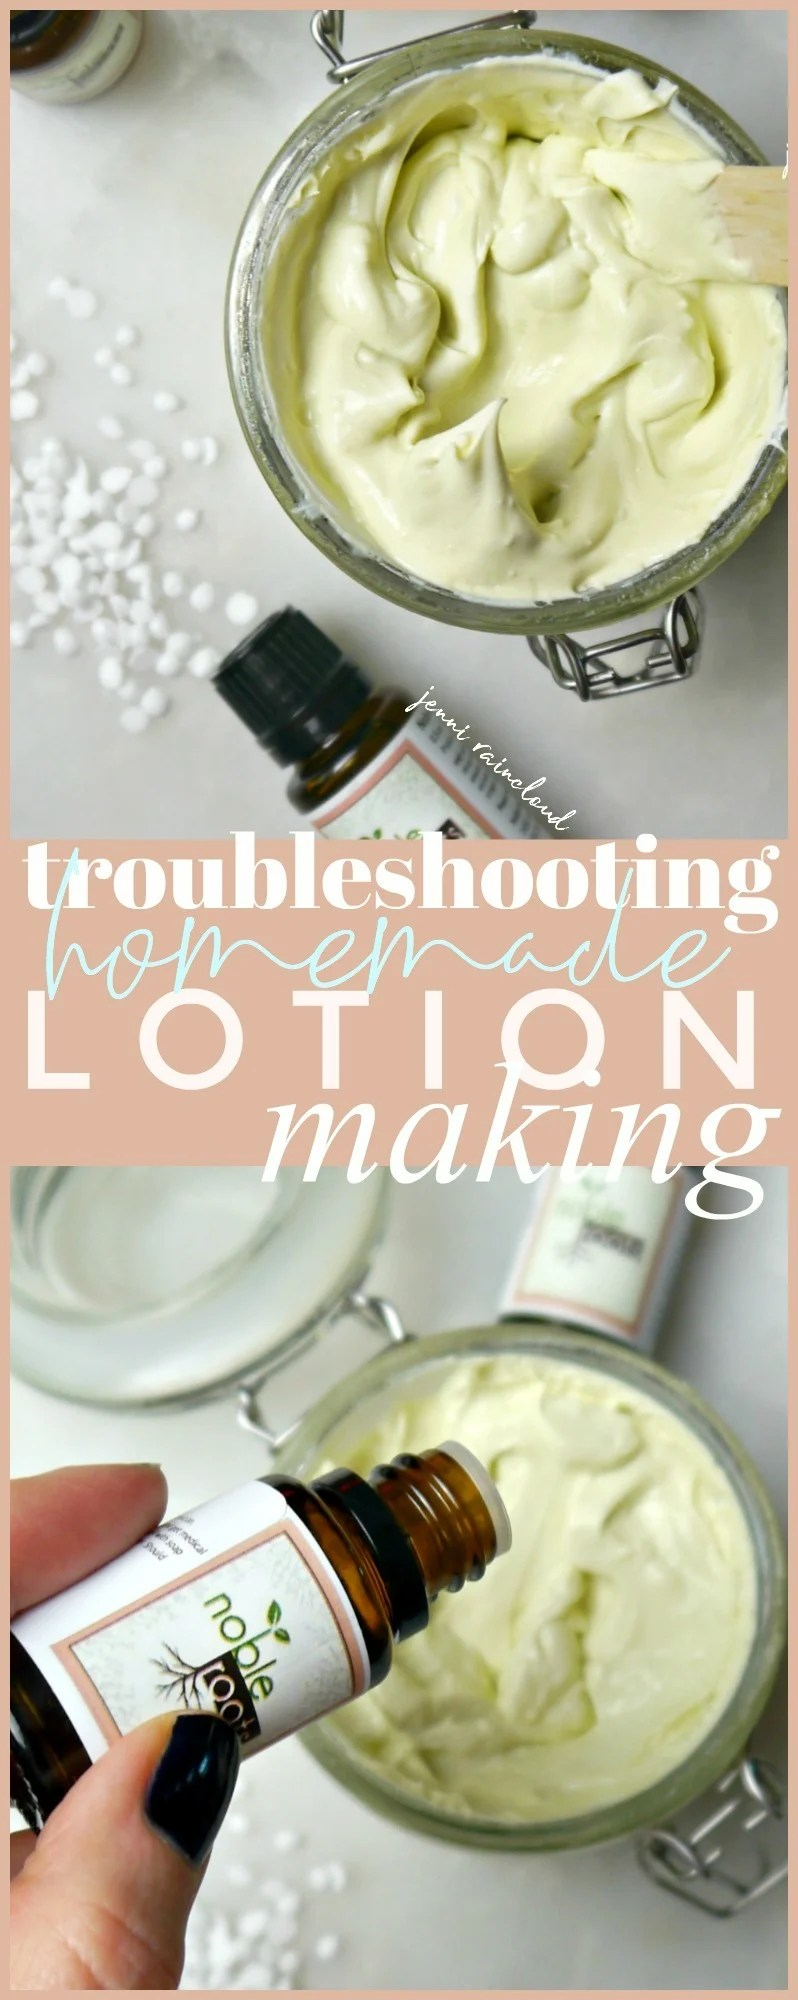 Troubleshooting Lotion Making